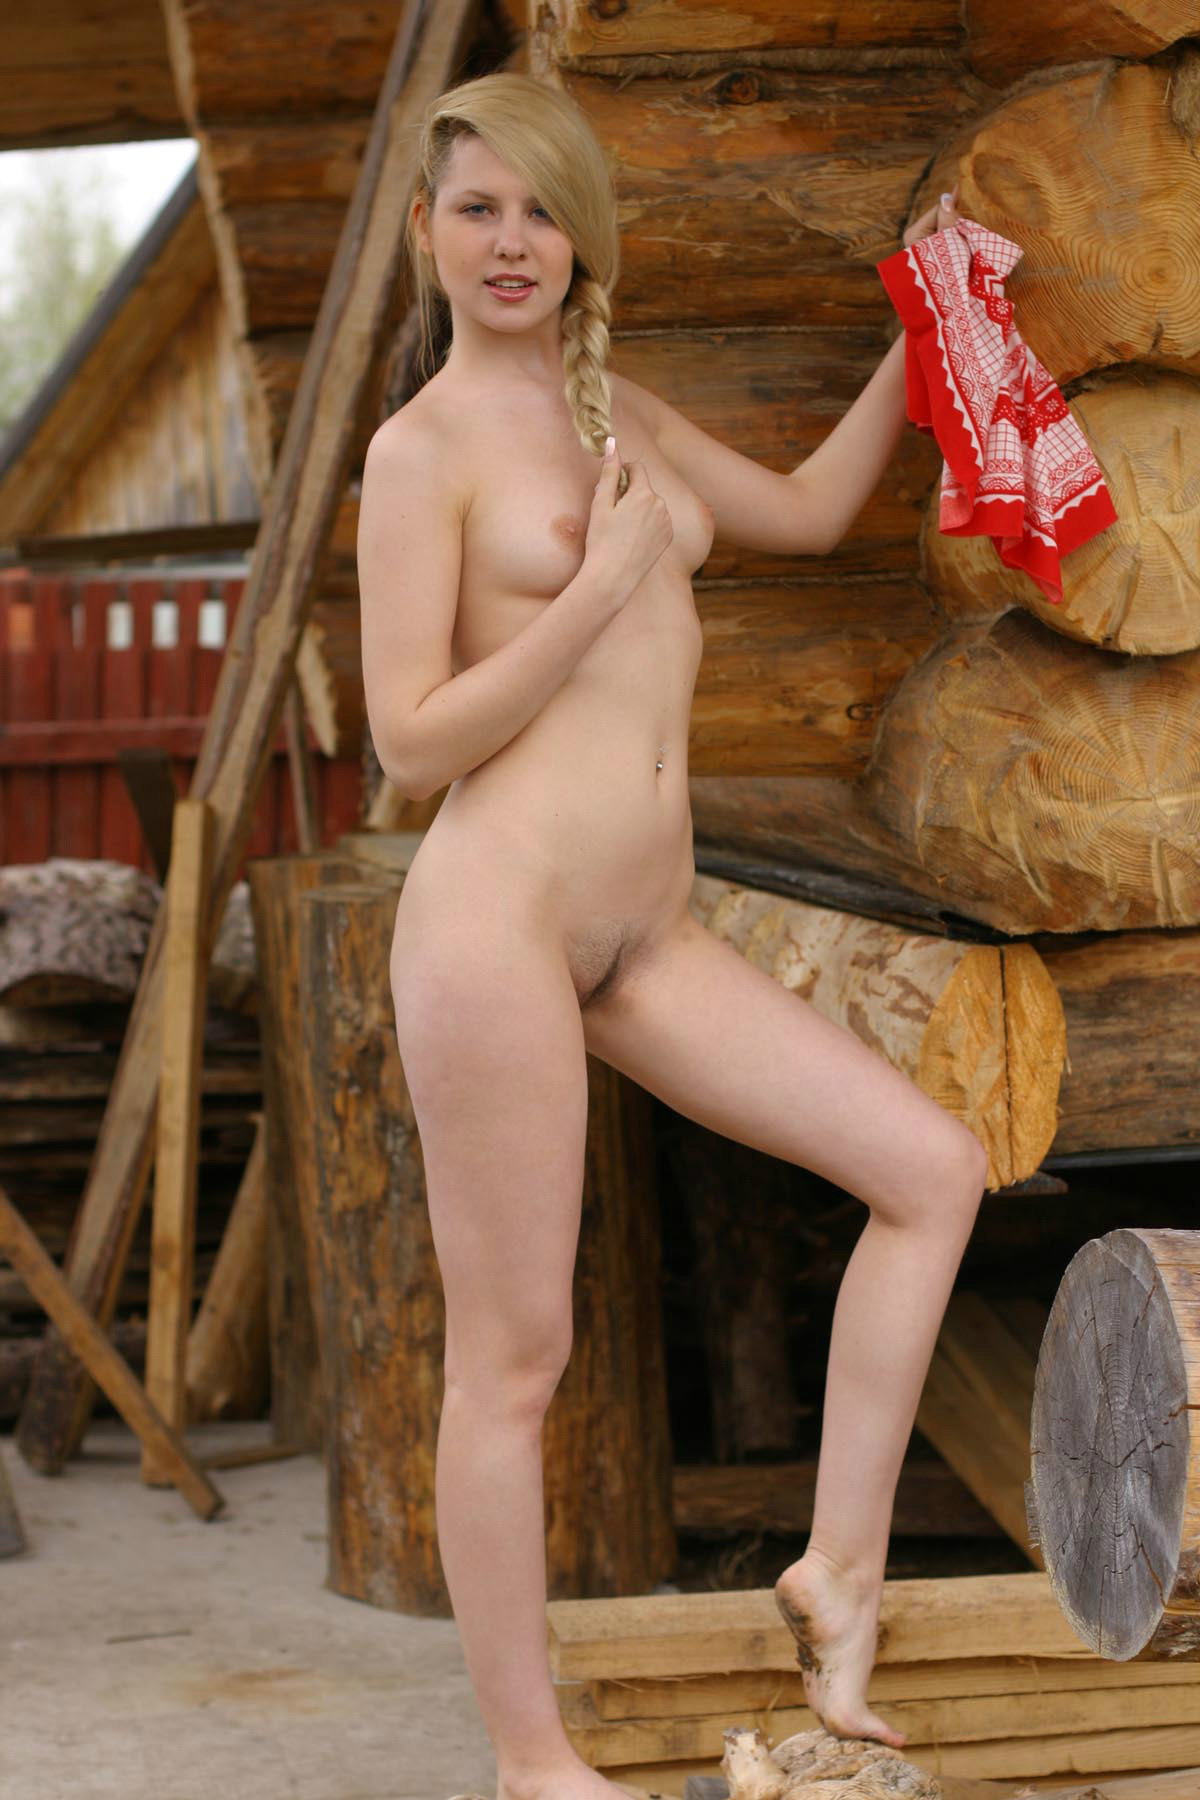 Village sexy girls rather good